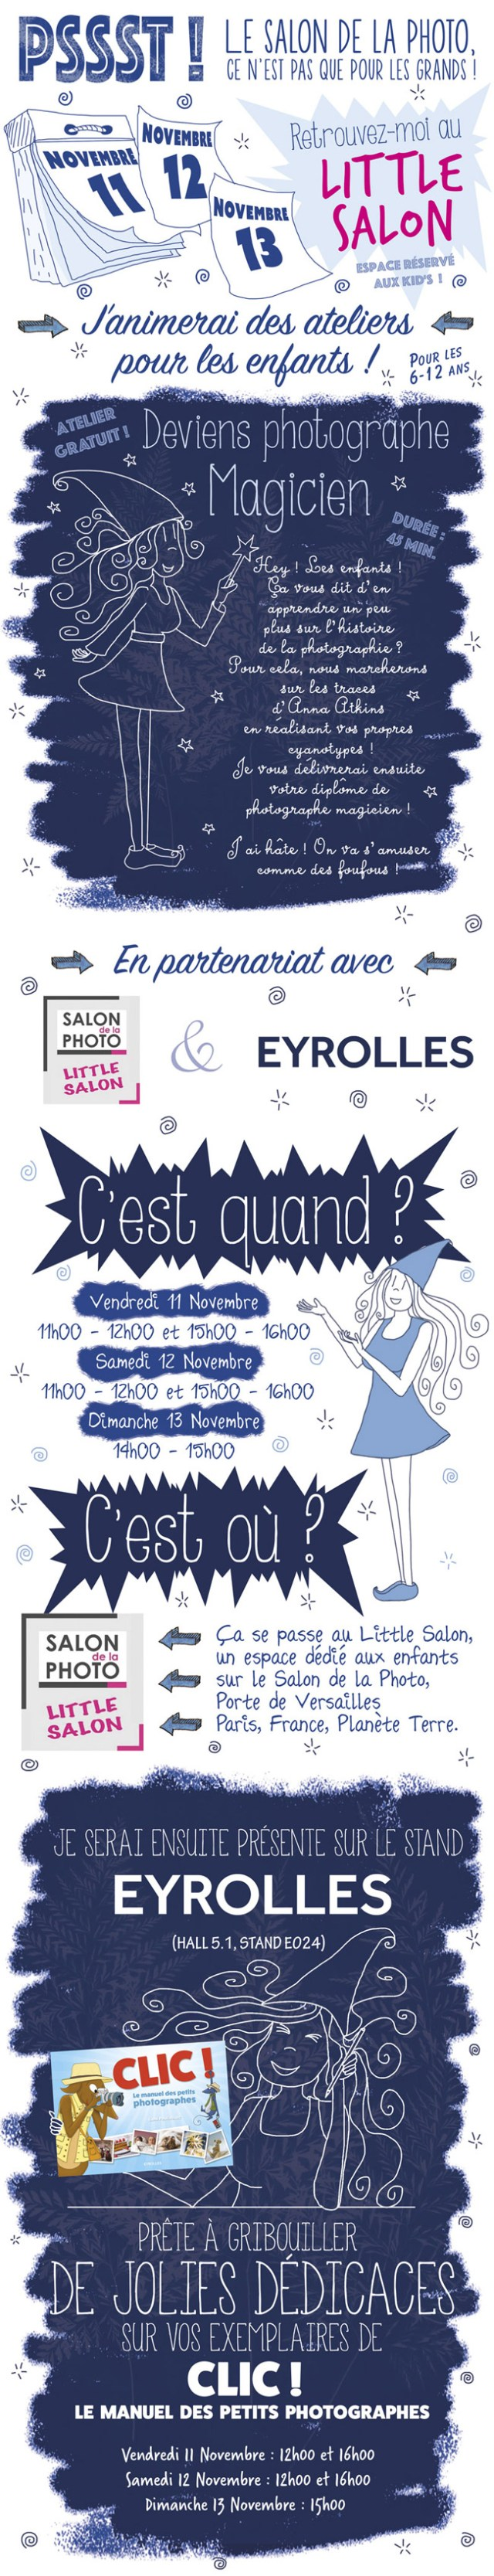 Ateliers cyanotype pour enfant au salon de la photo